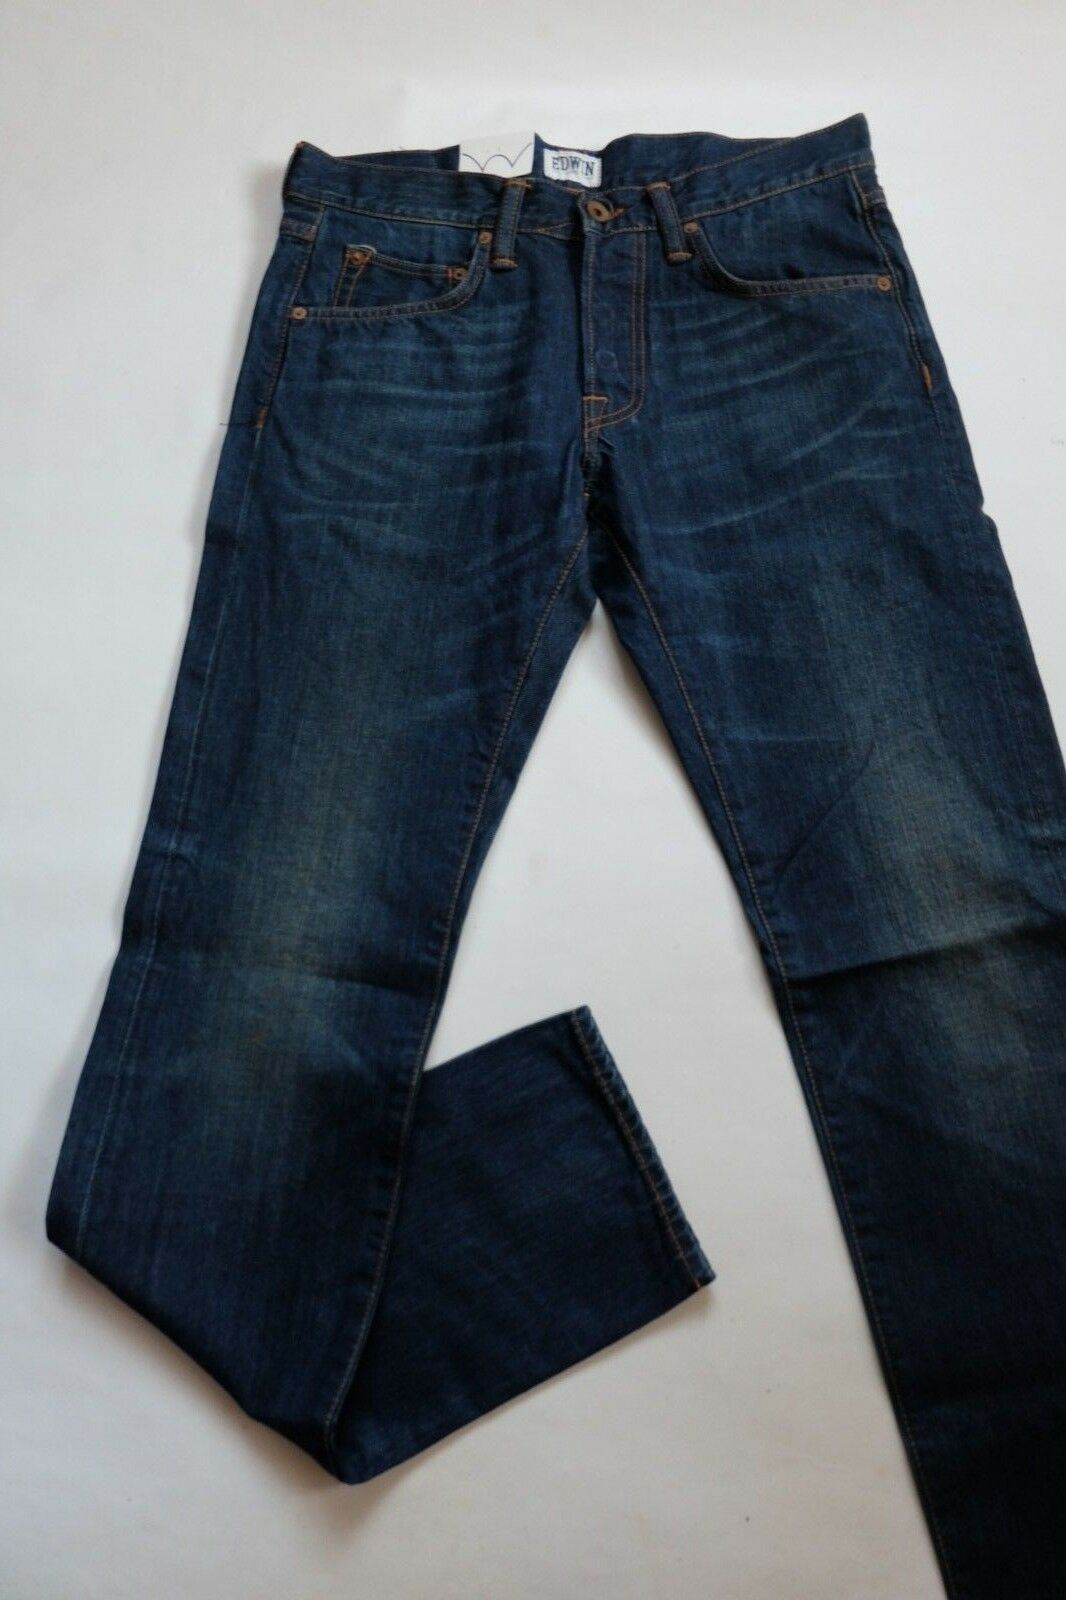 JEANS EDWIN ED 55 RELAXED TAPERED (compact -mid used) W38 L34 ( i017783 36)